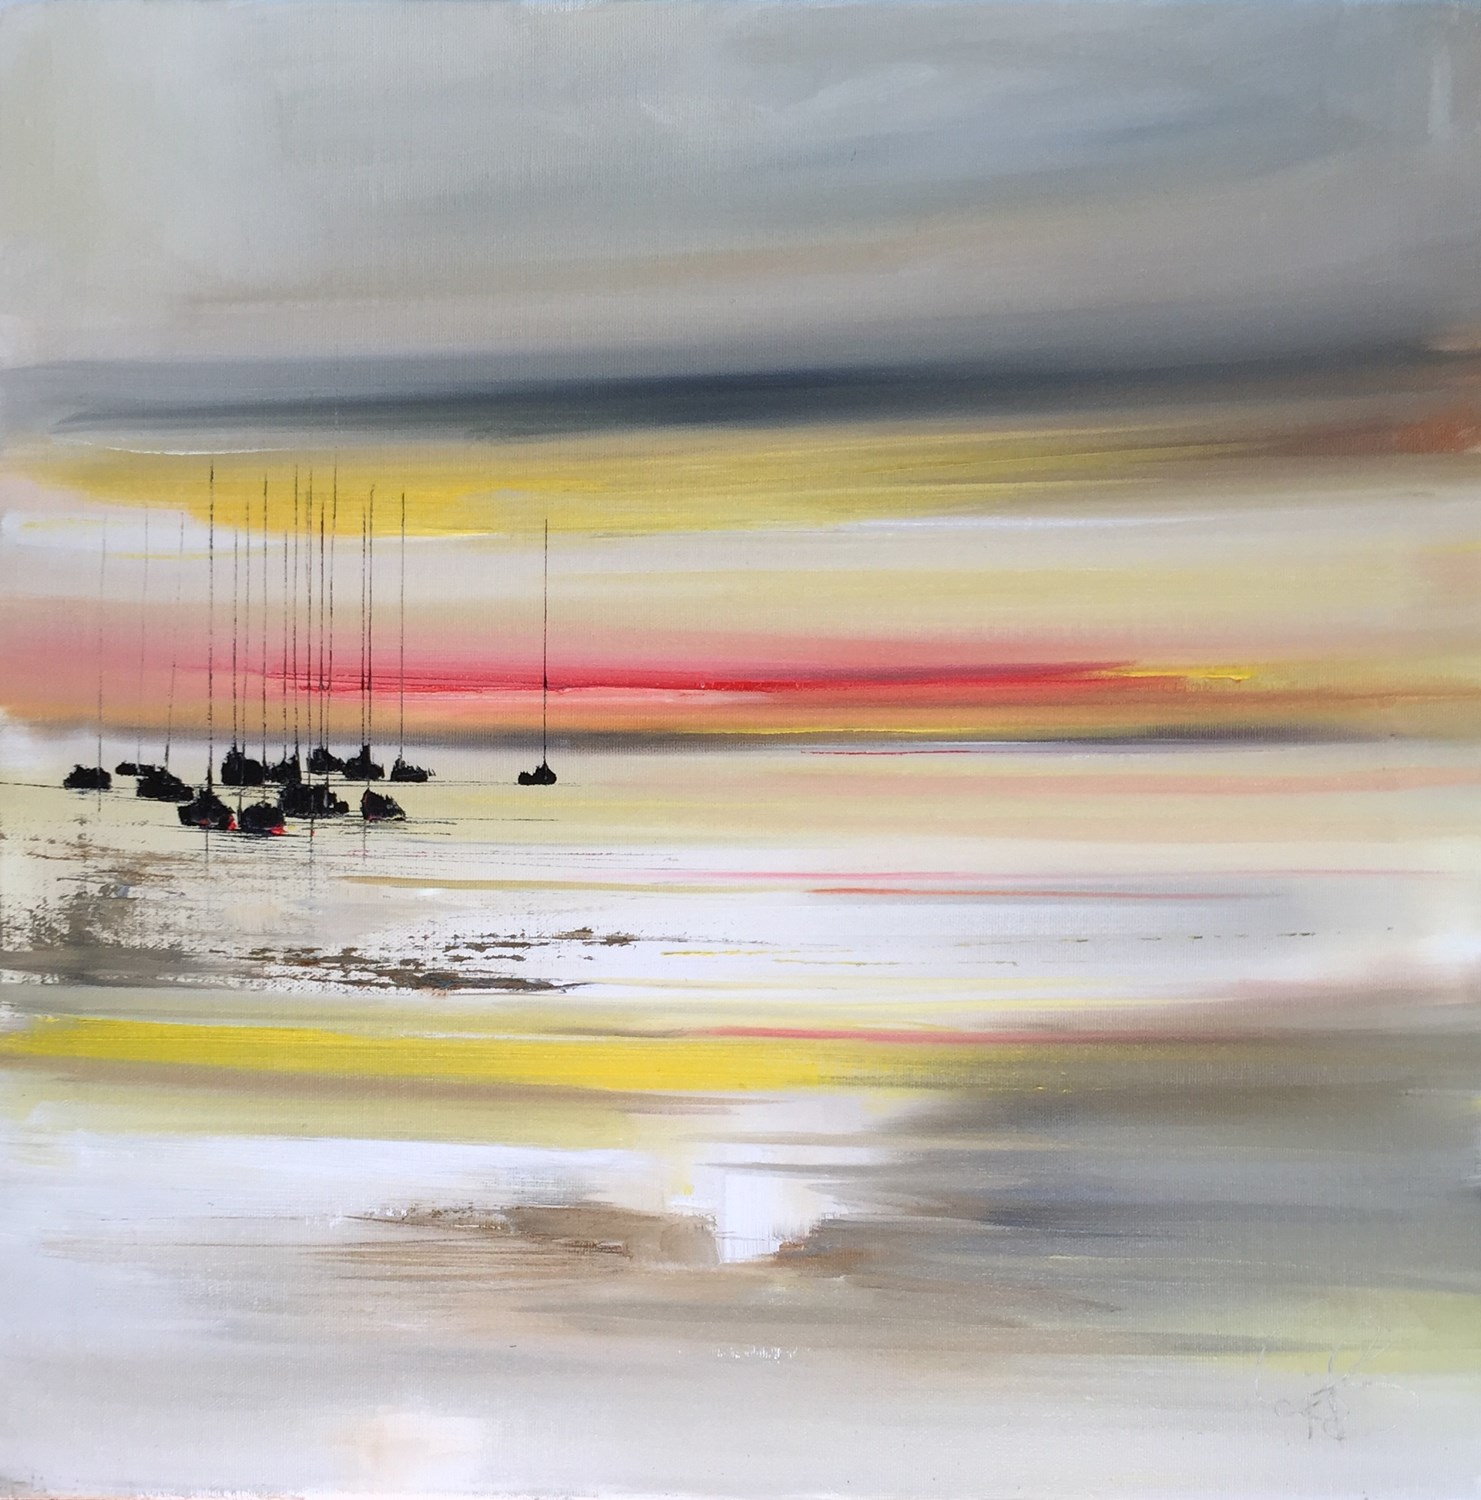 'Docked whist the Sunsets' by artist Rosanne Barr